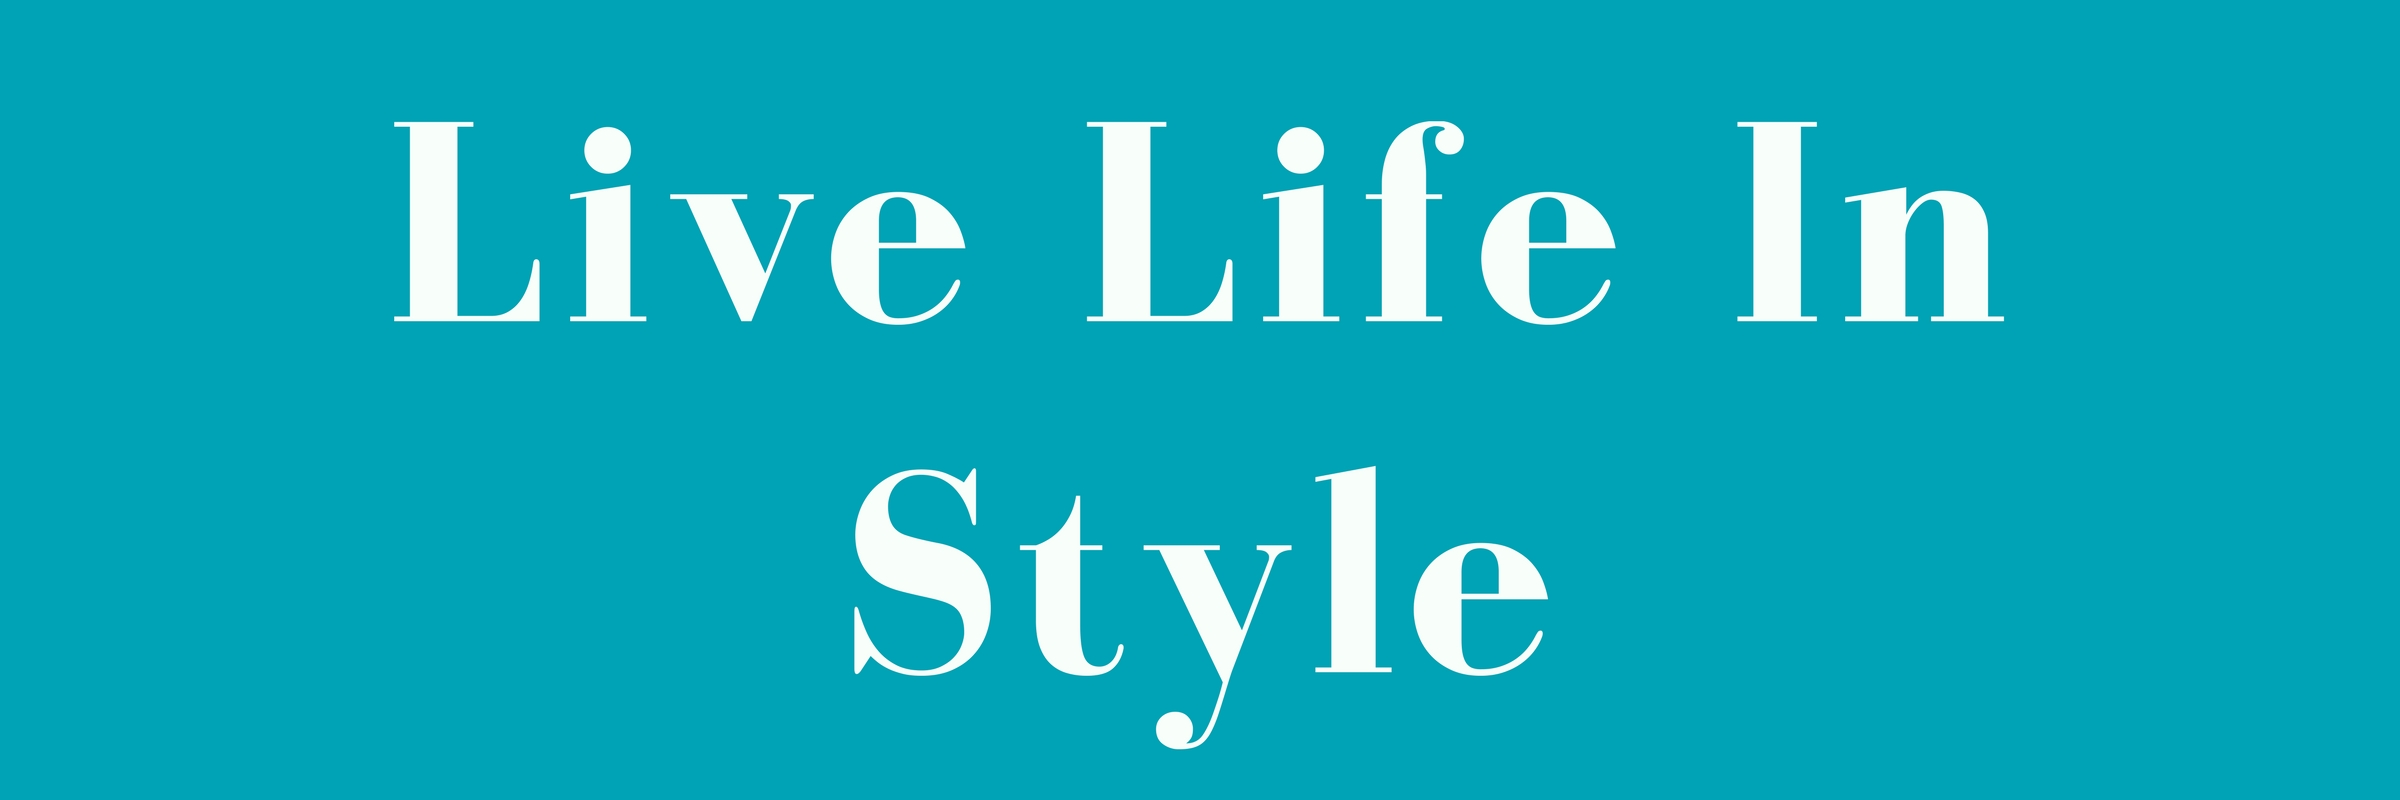 live-life-in-style